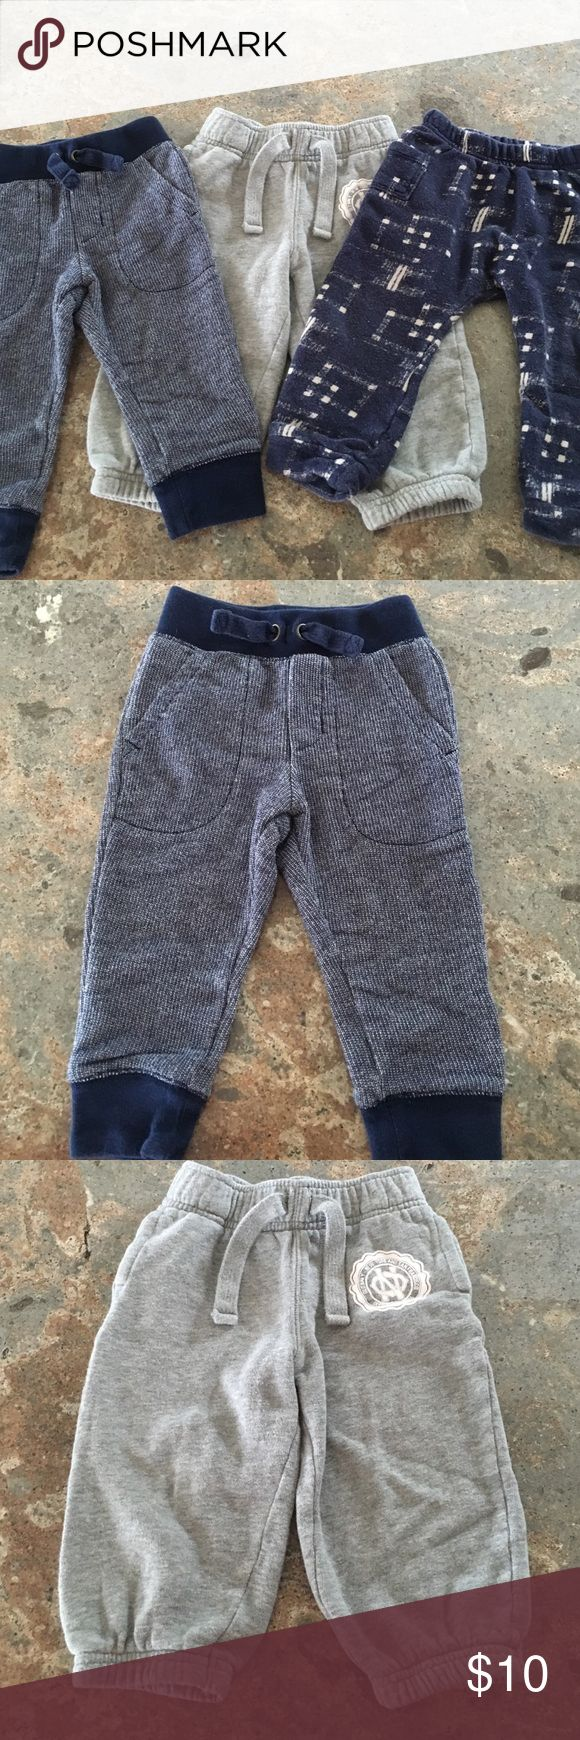 Toddler boy jogger sweatpants bundle! The plain navy pants are Cherokee brand and are size 12 months. The grey sweats are from old navy size 12-18 months. And the printed navy ones are size 18-24 months and are old navy brand as well. All in good used condition and all have piling and minor fading from washing. Old Navy Bottoms Sweatpants & Joggers